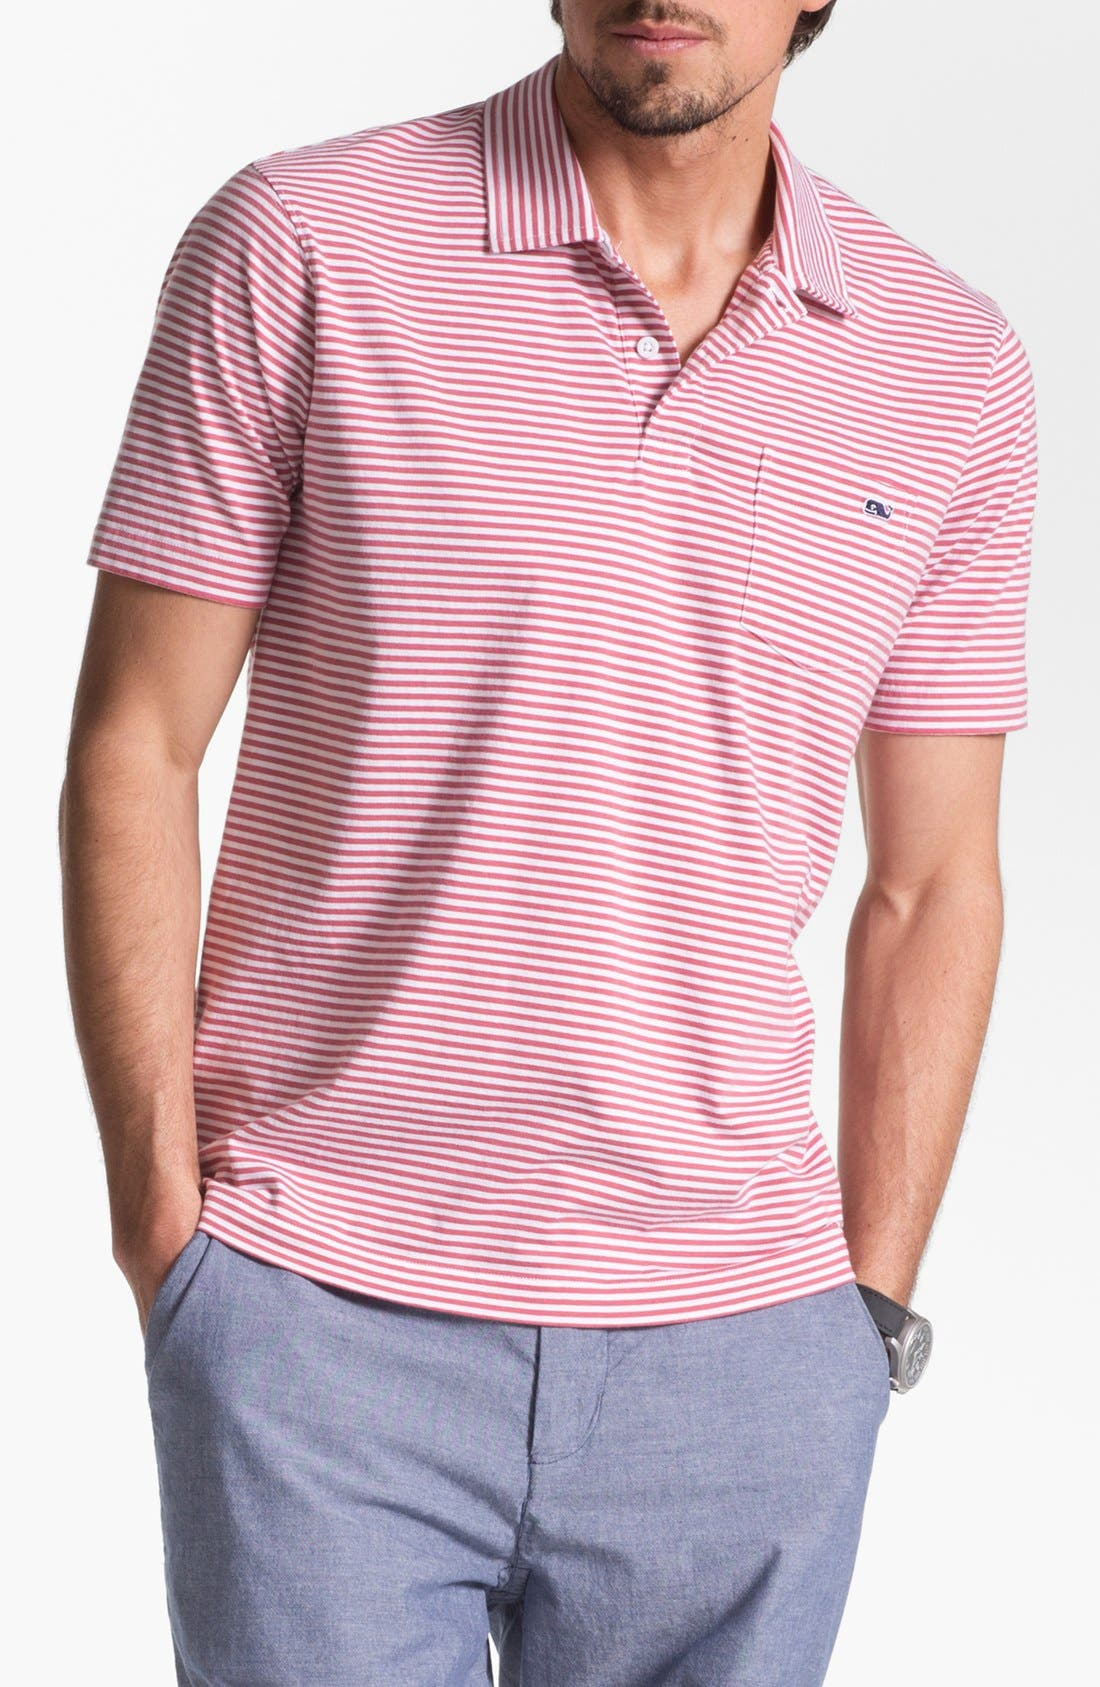 Alternate Image 1 Selected - Vineyard Vines 'Clearwater' Stripe Polo